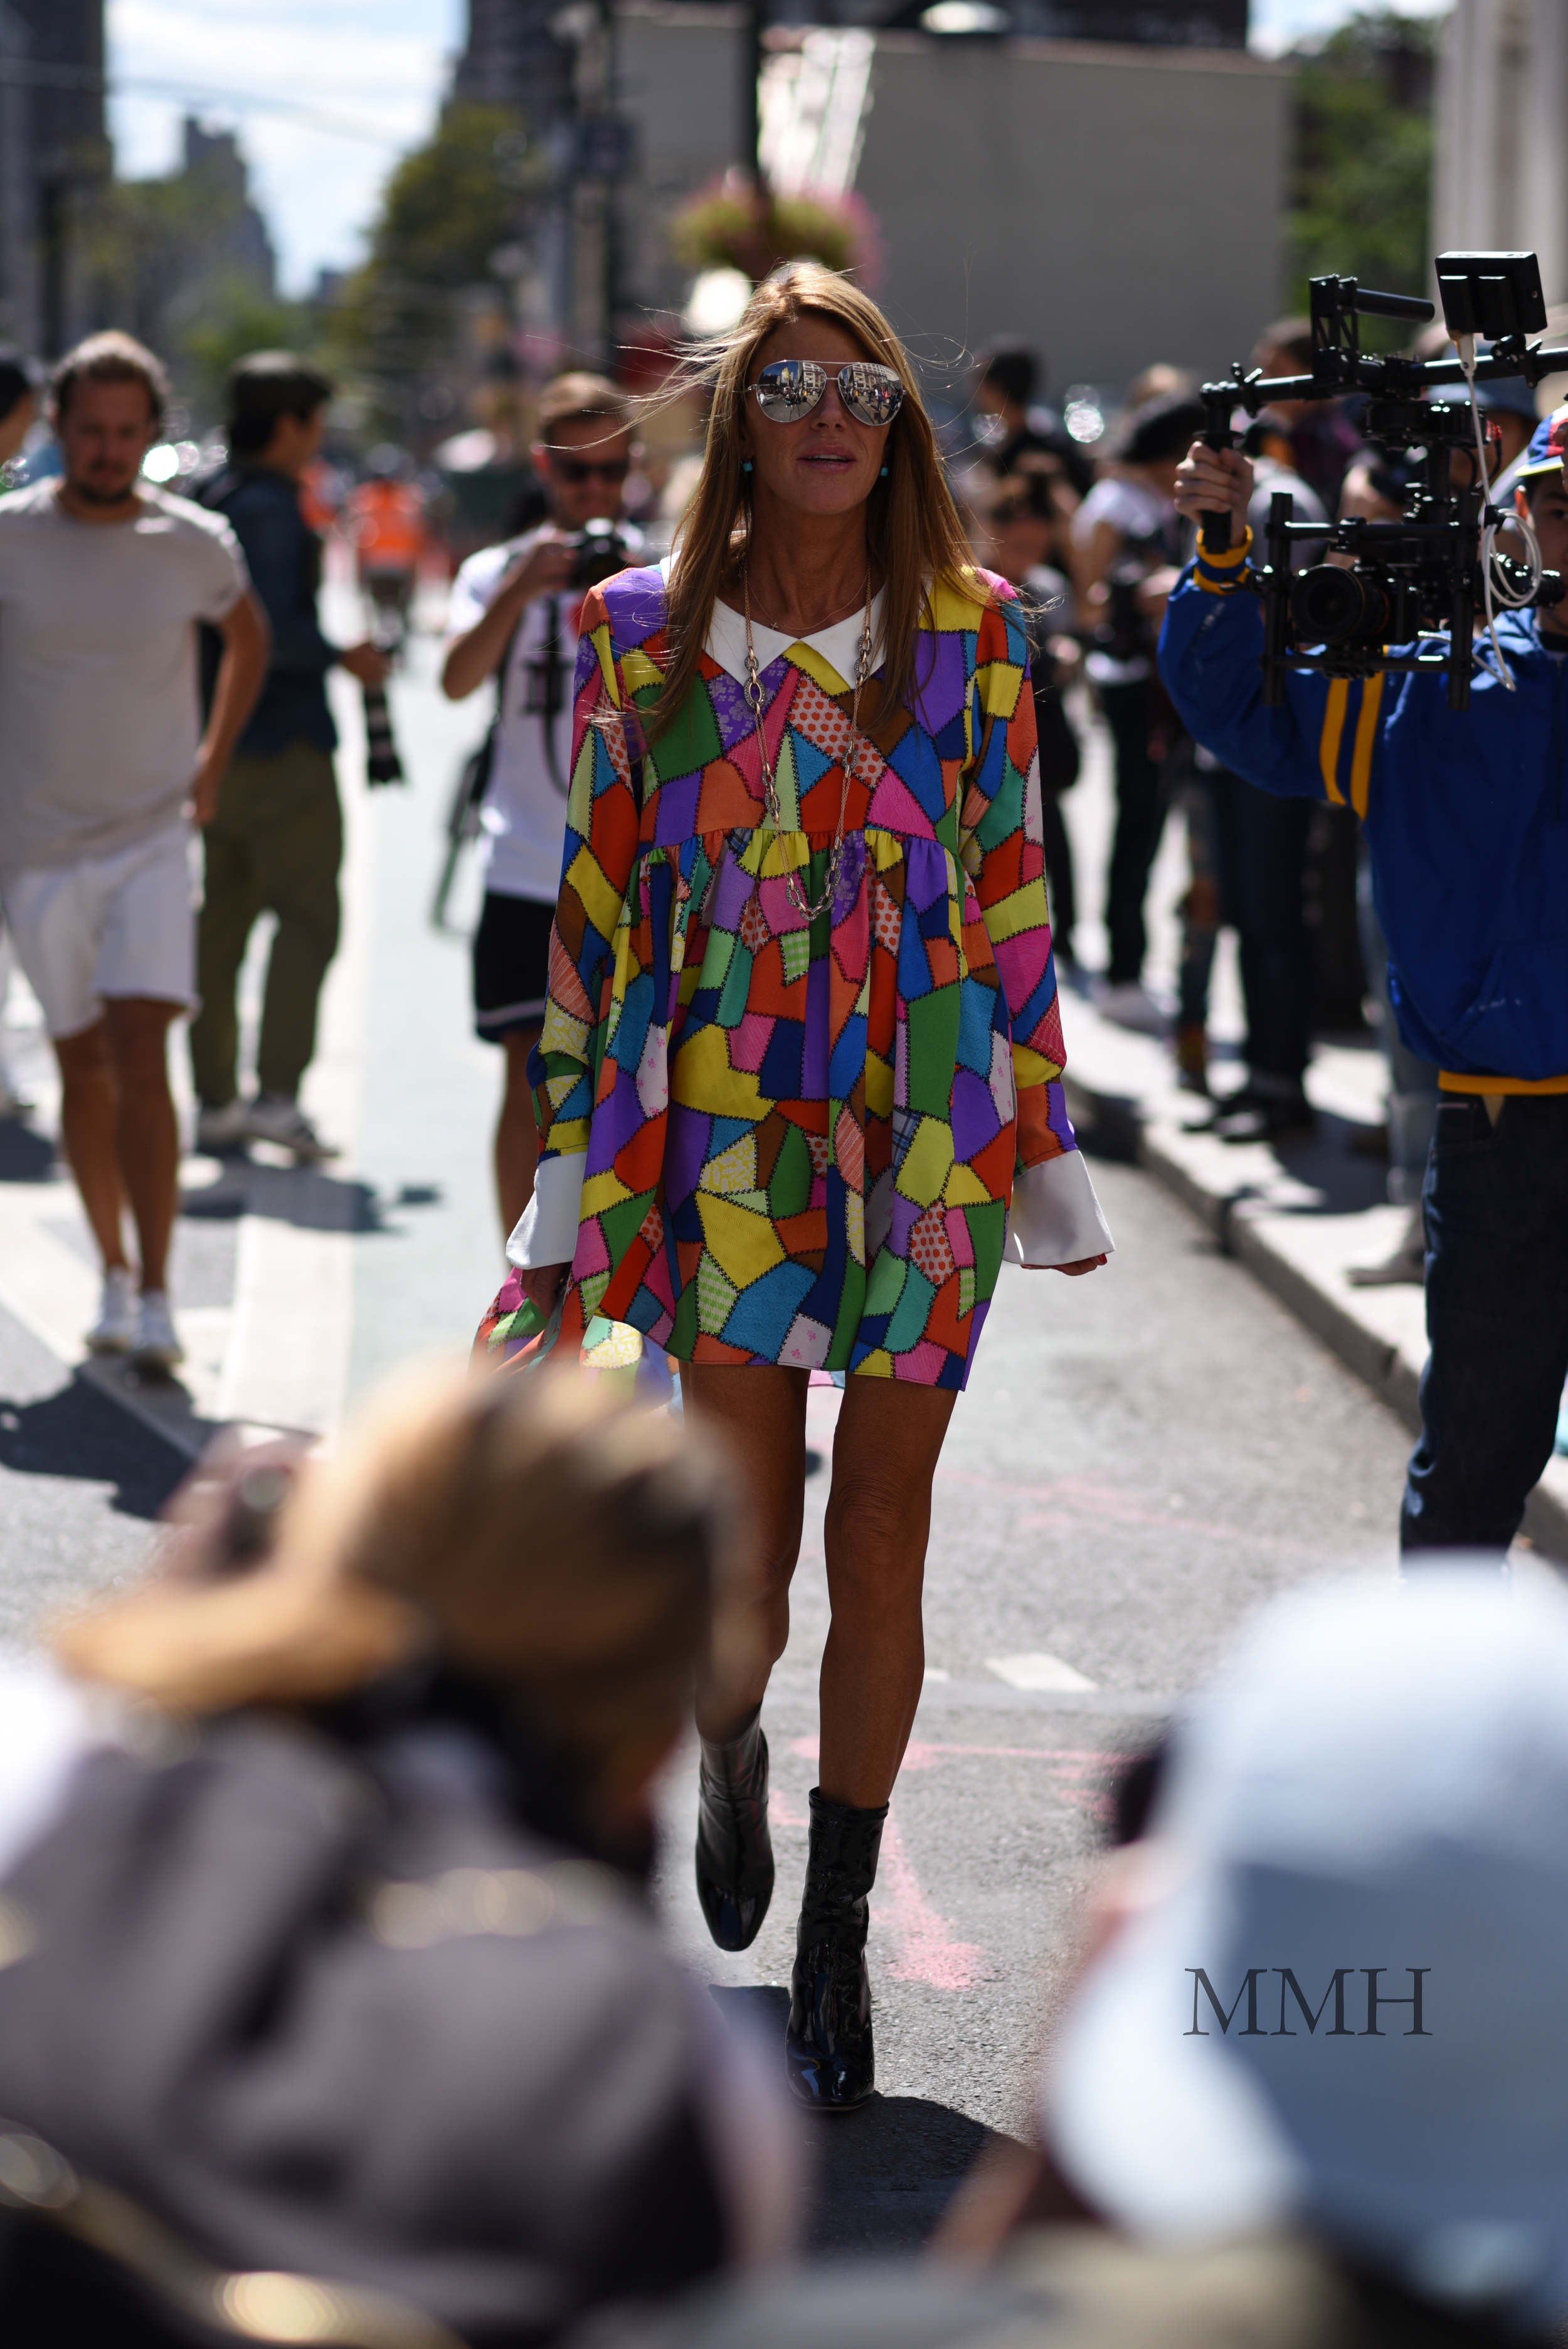 Anna Dello Russo, Editor-at-large for Vogue Japan